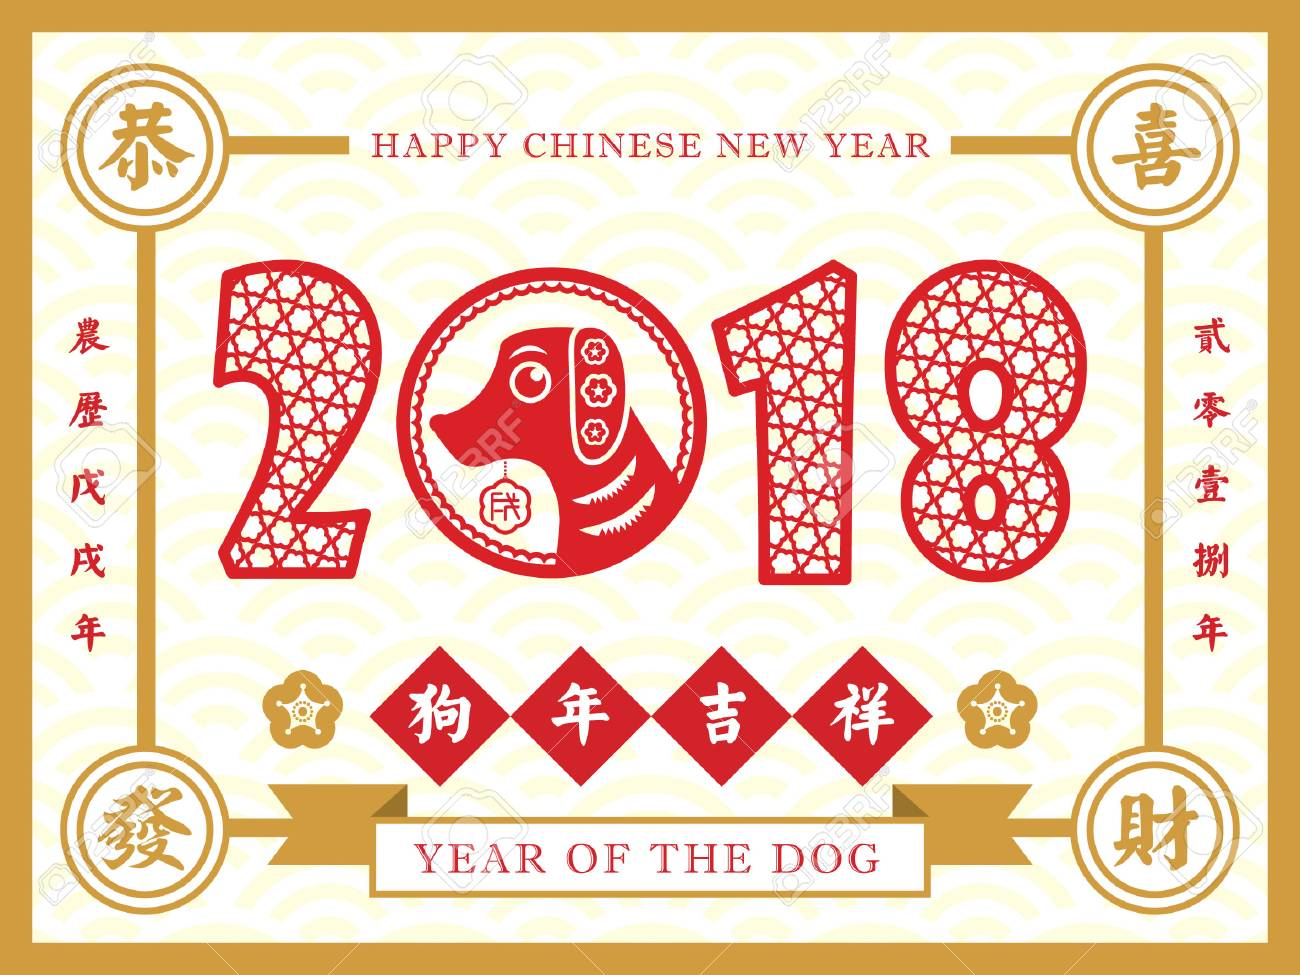 2018 chinese new year greeting card template in chinese vintage style design translation